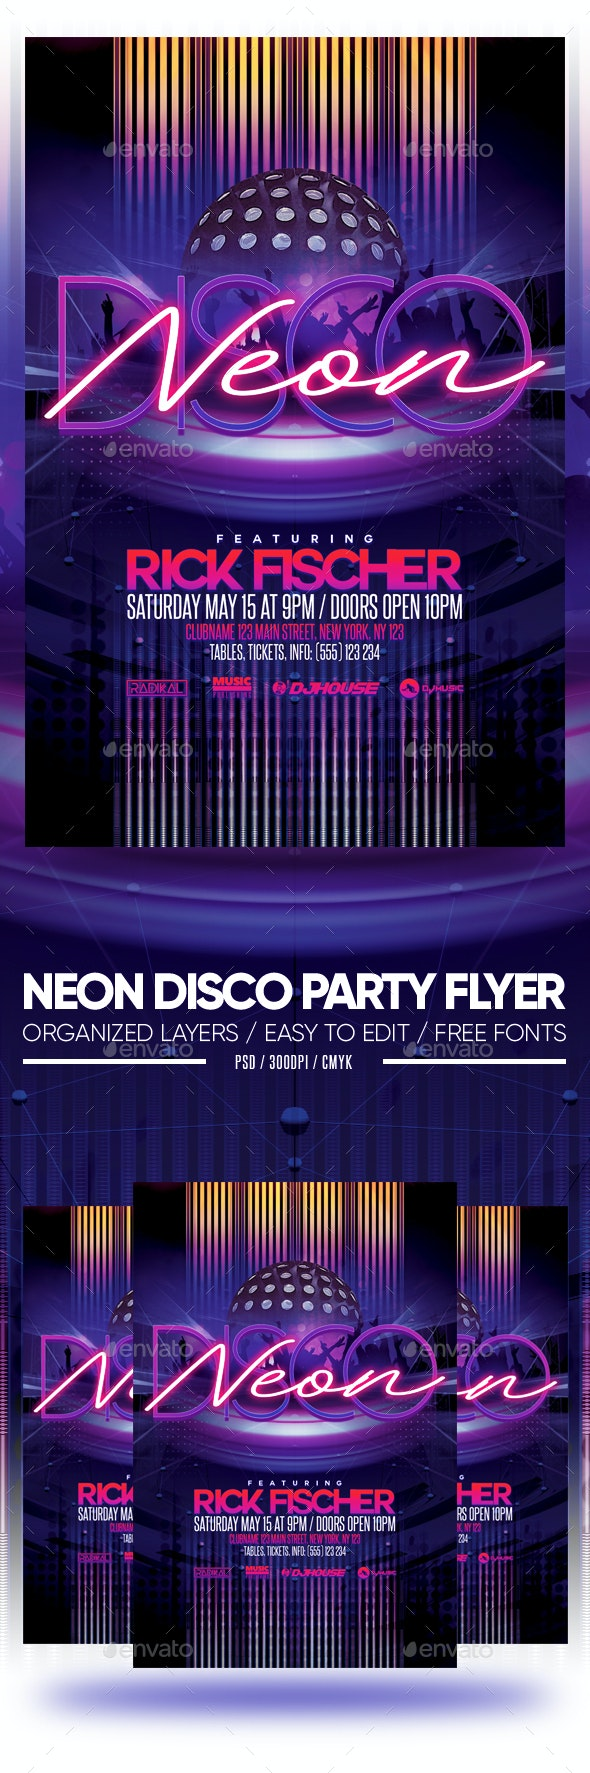 Neon Disco Party Flyer - Clubs & Parties Events